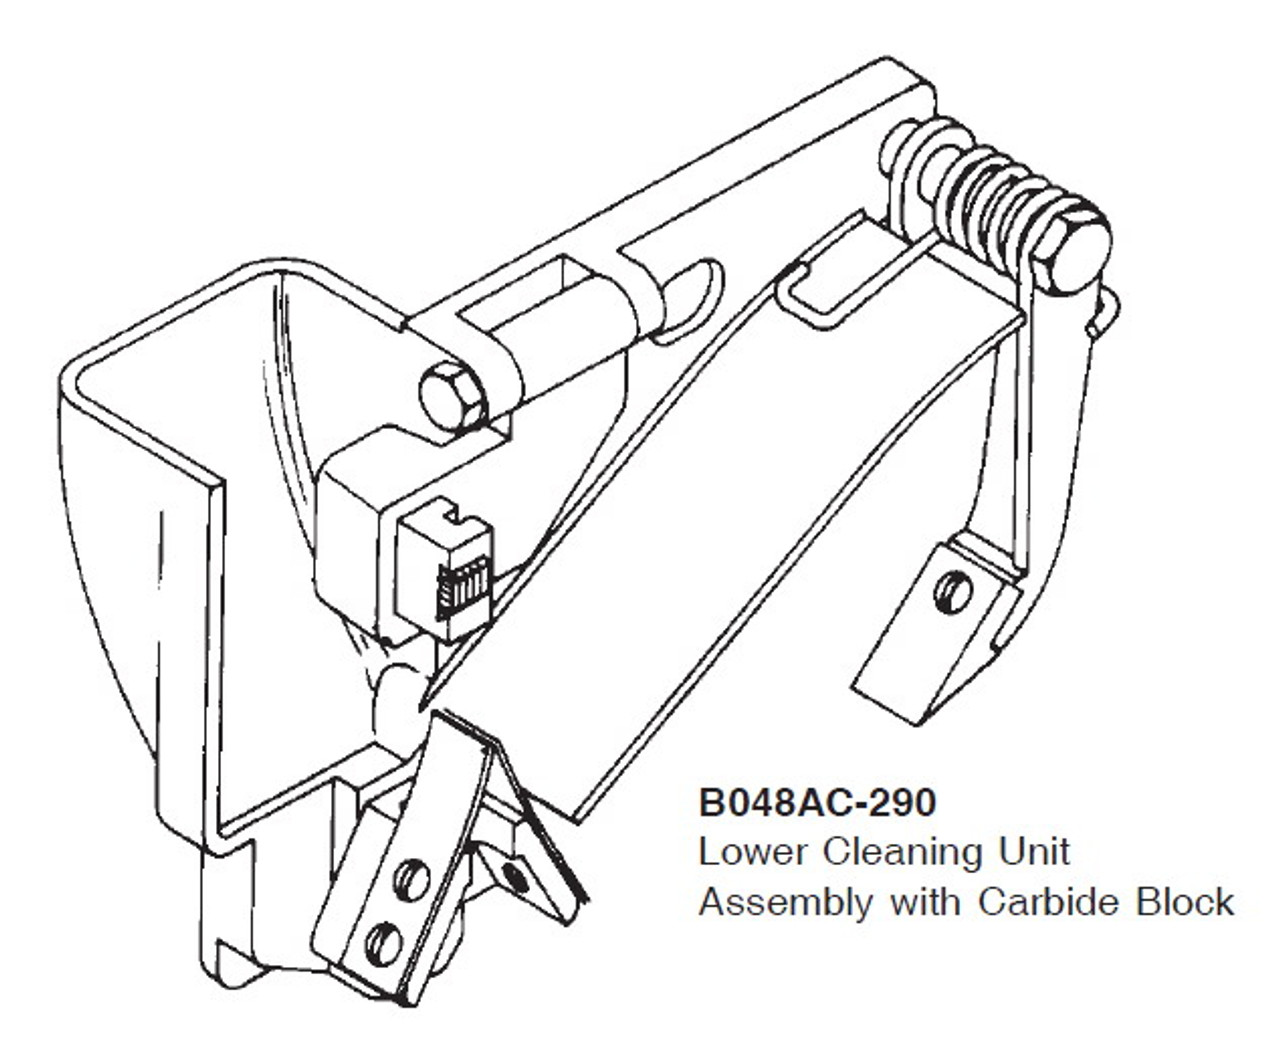 Biro Lower Cleaning Unit Assembly with Carbide Block - B048AC-290